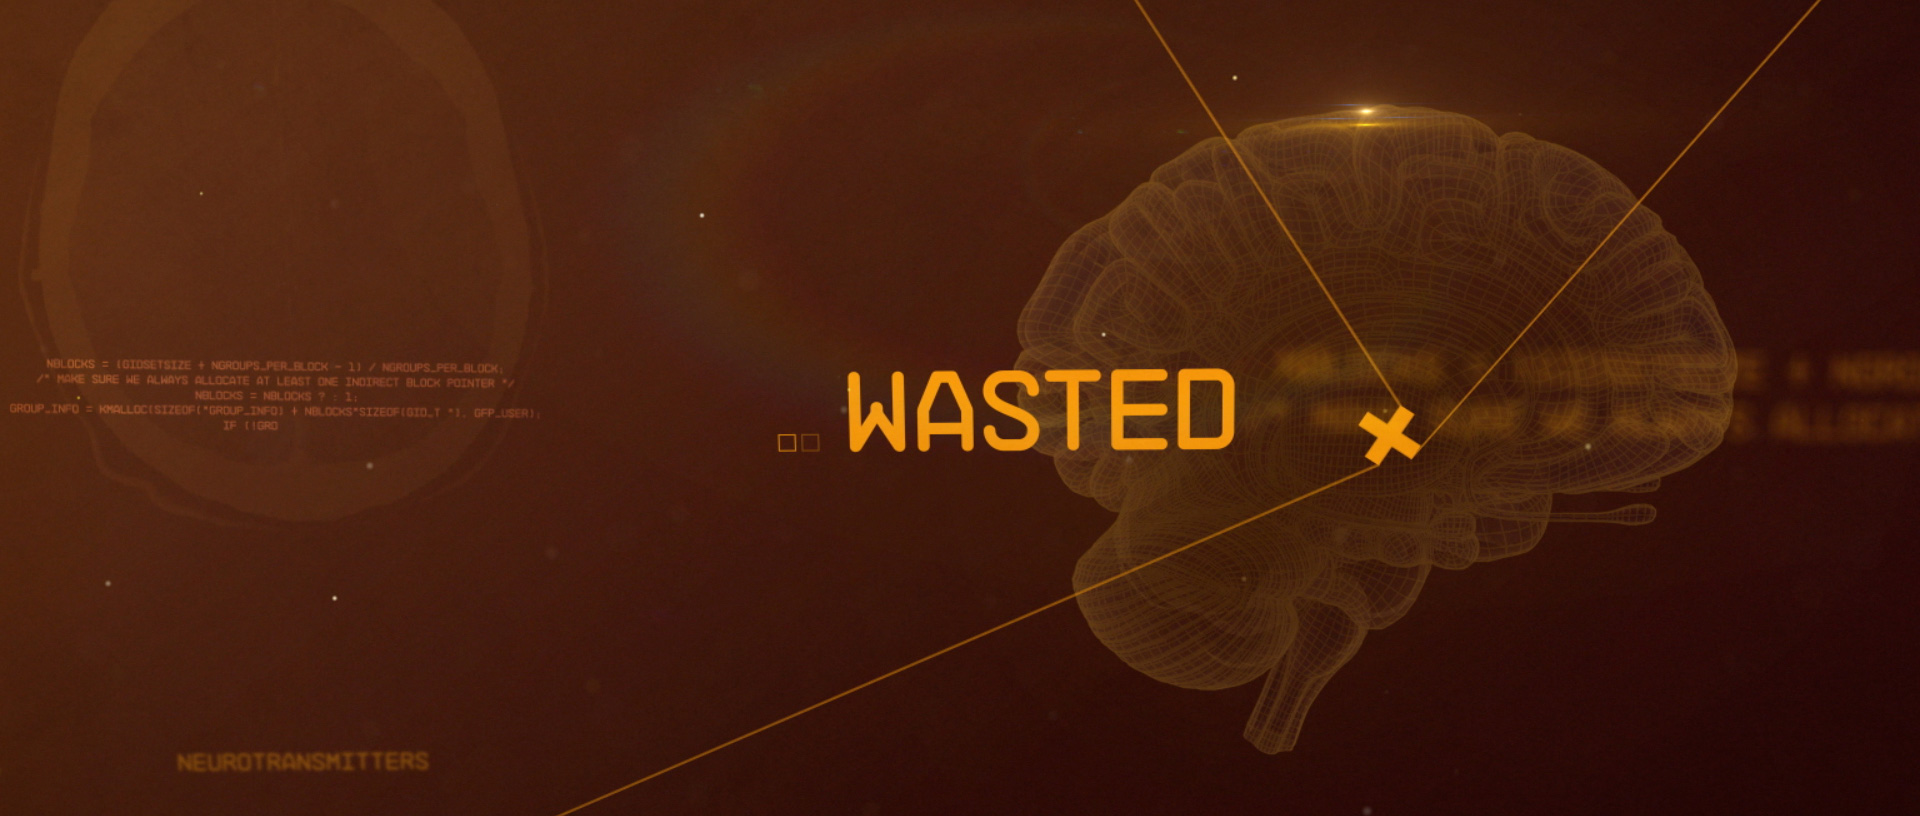 WASTED Documentary